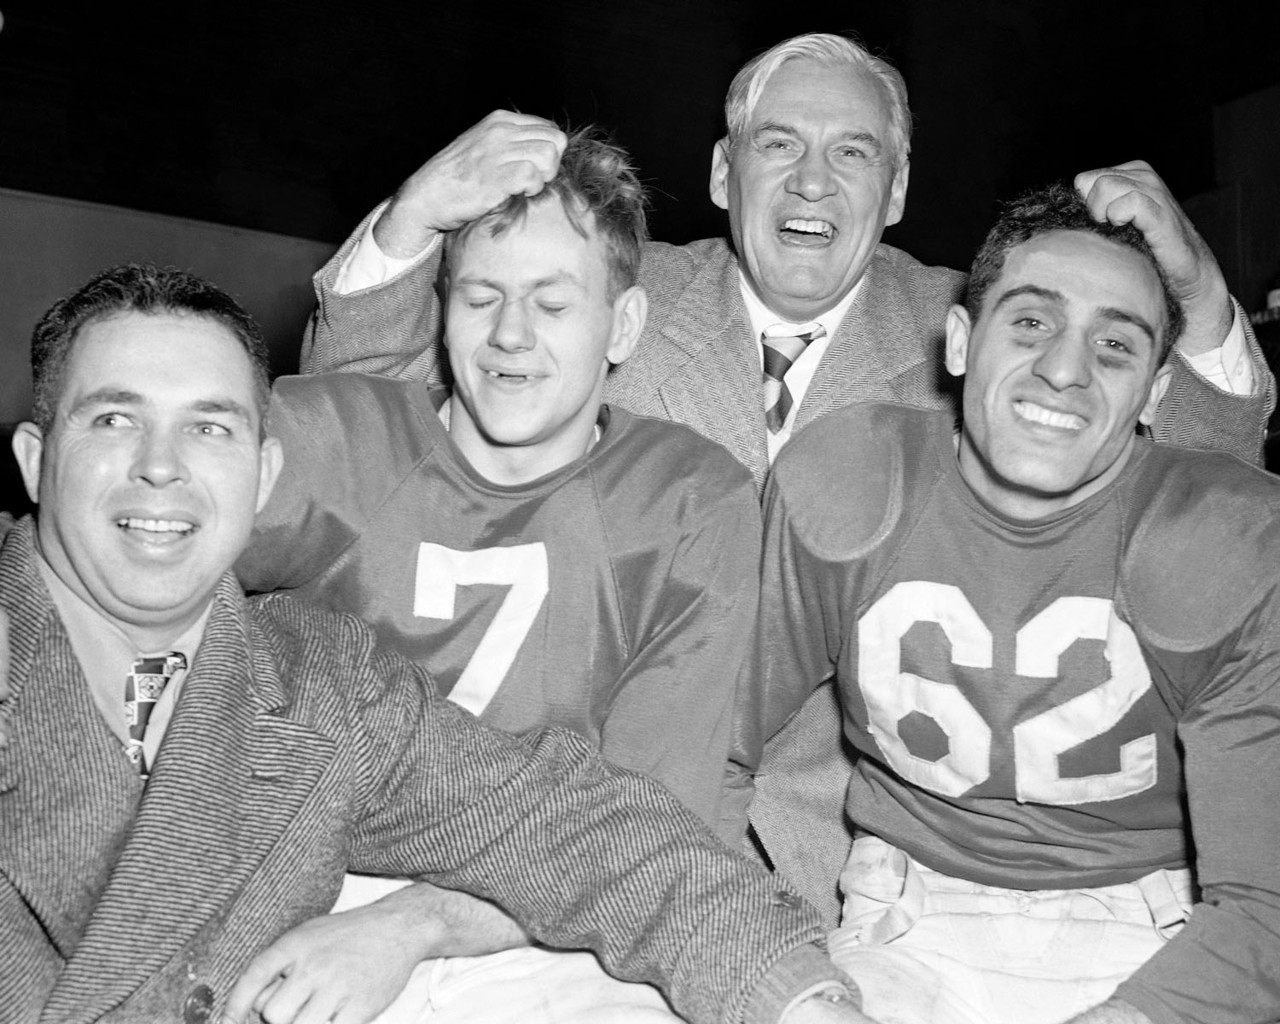 1) ARIZONA CARDINALS - Last NFL Title: 1947